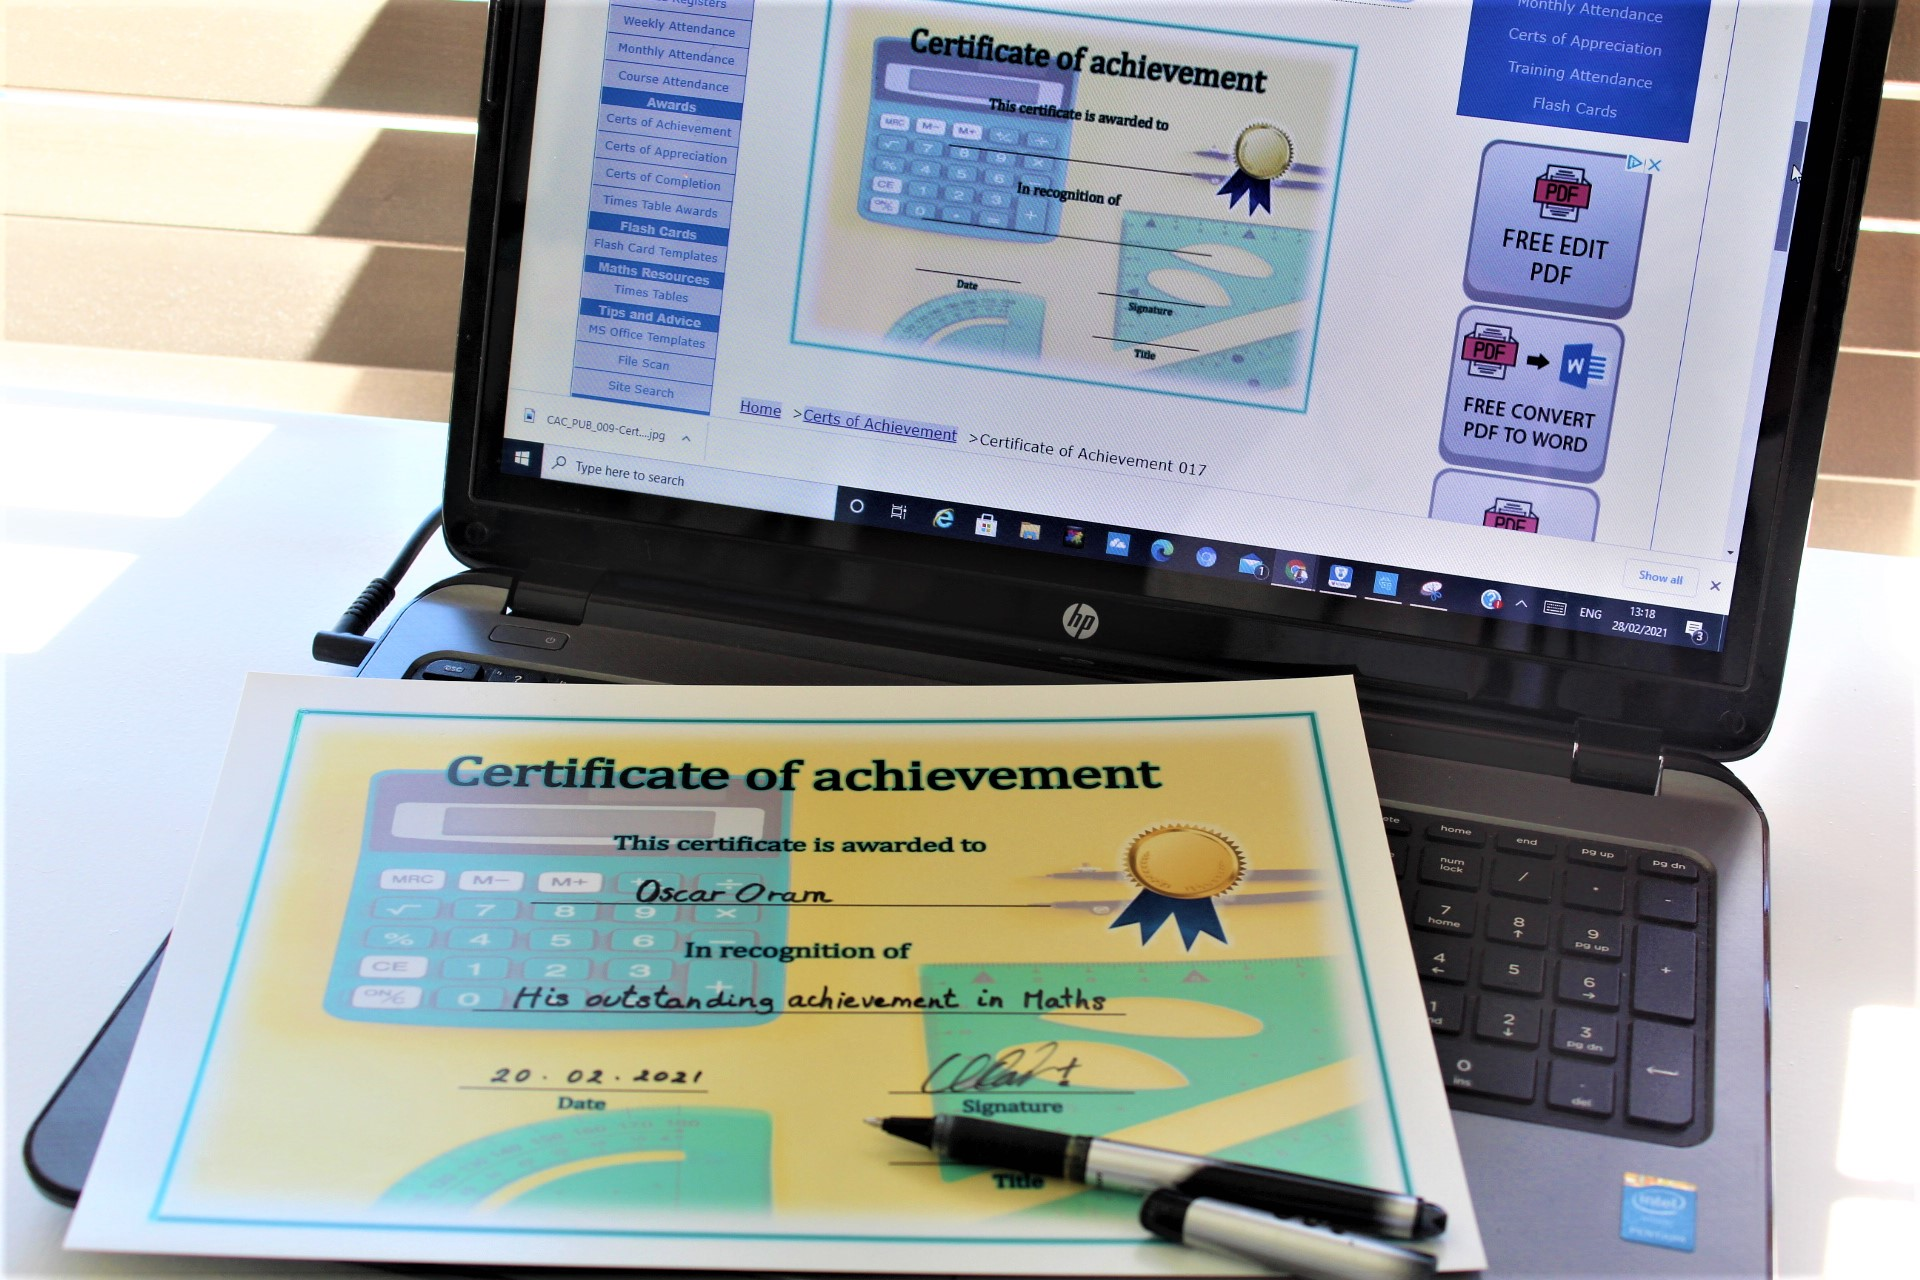 Certificates of Achievement, Completion and Appreciation